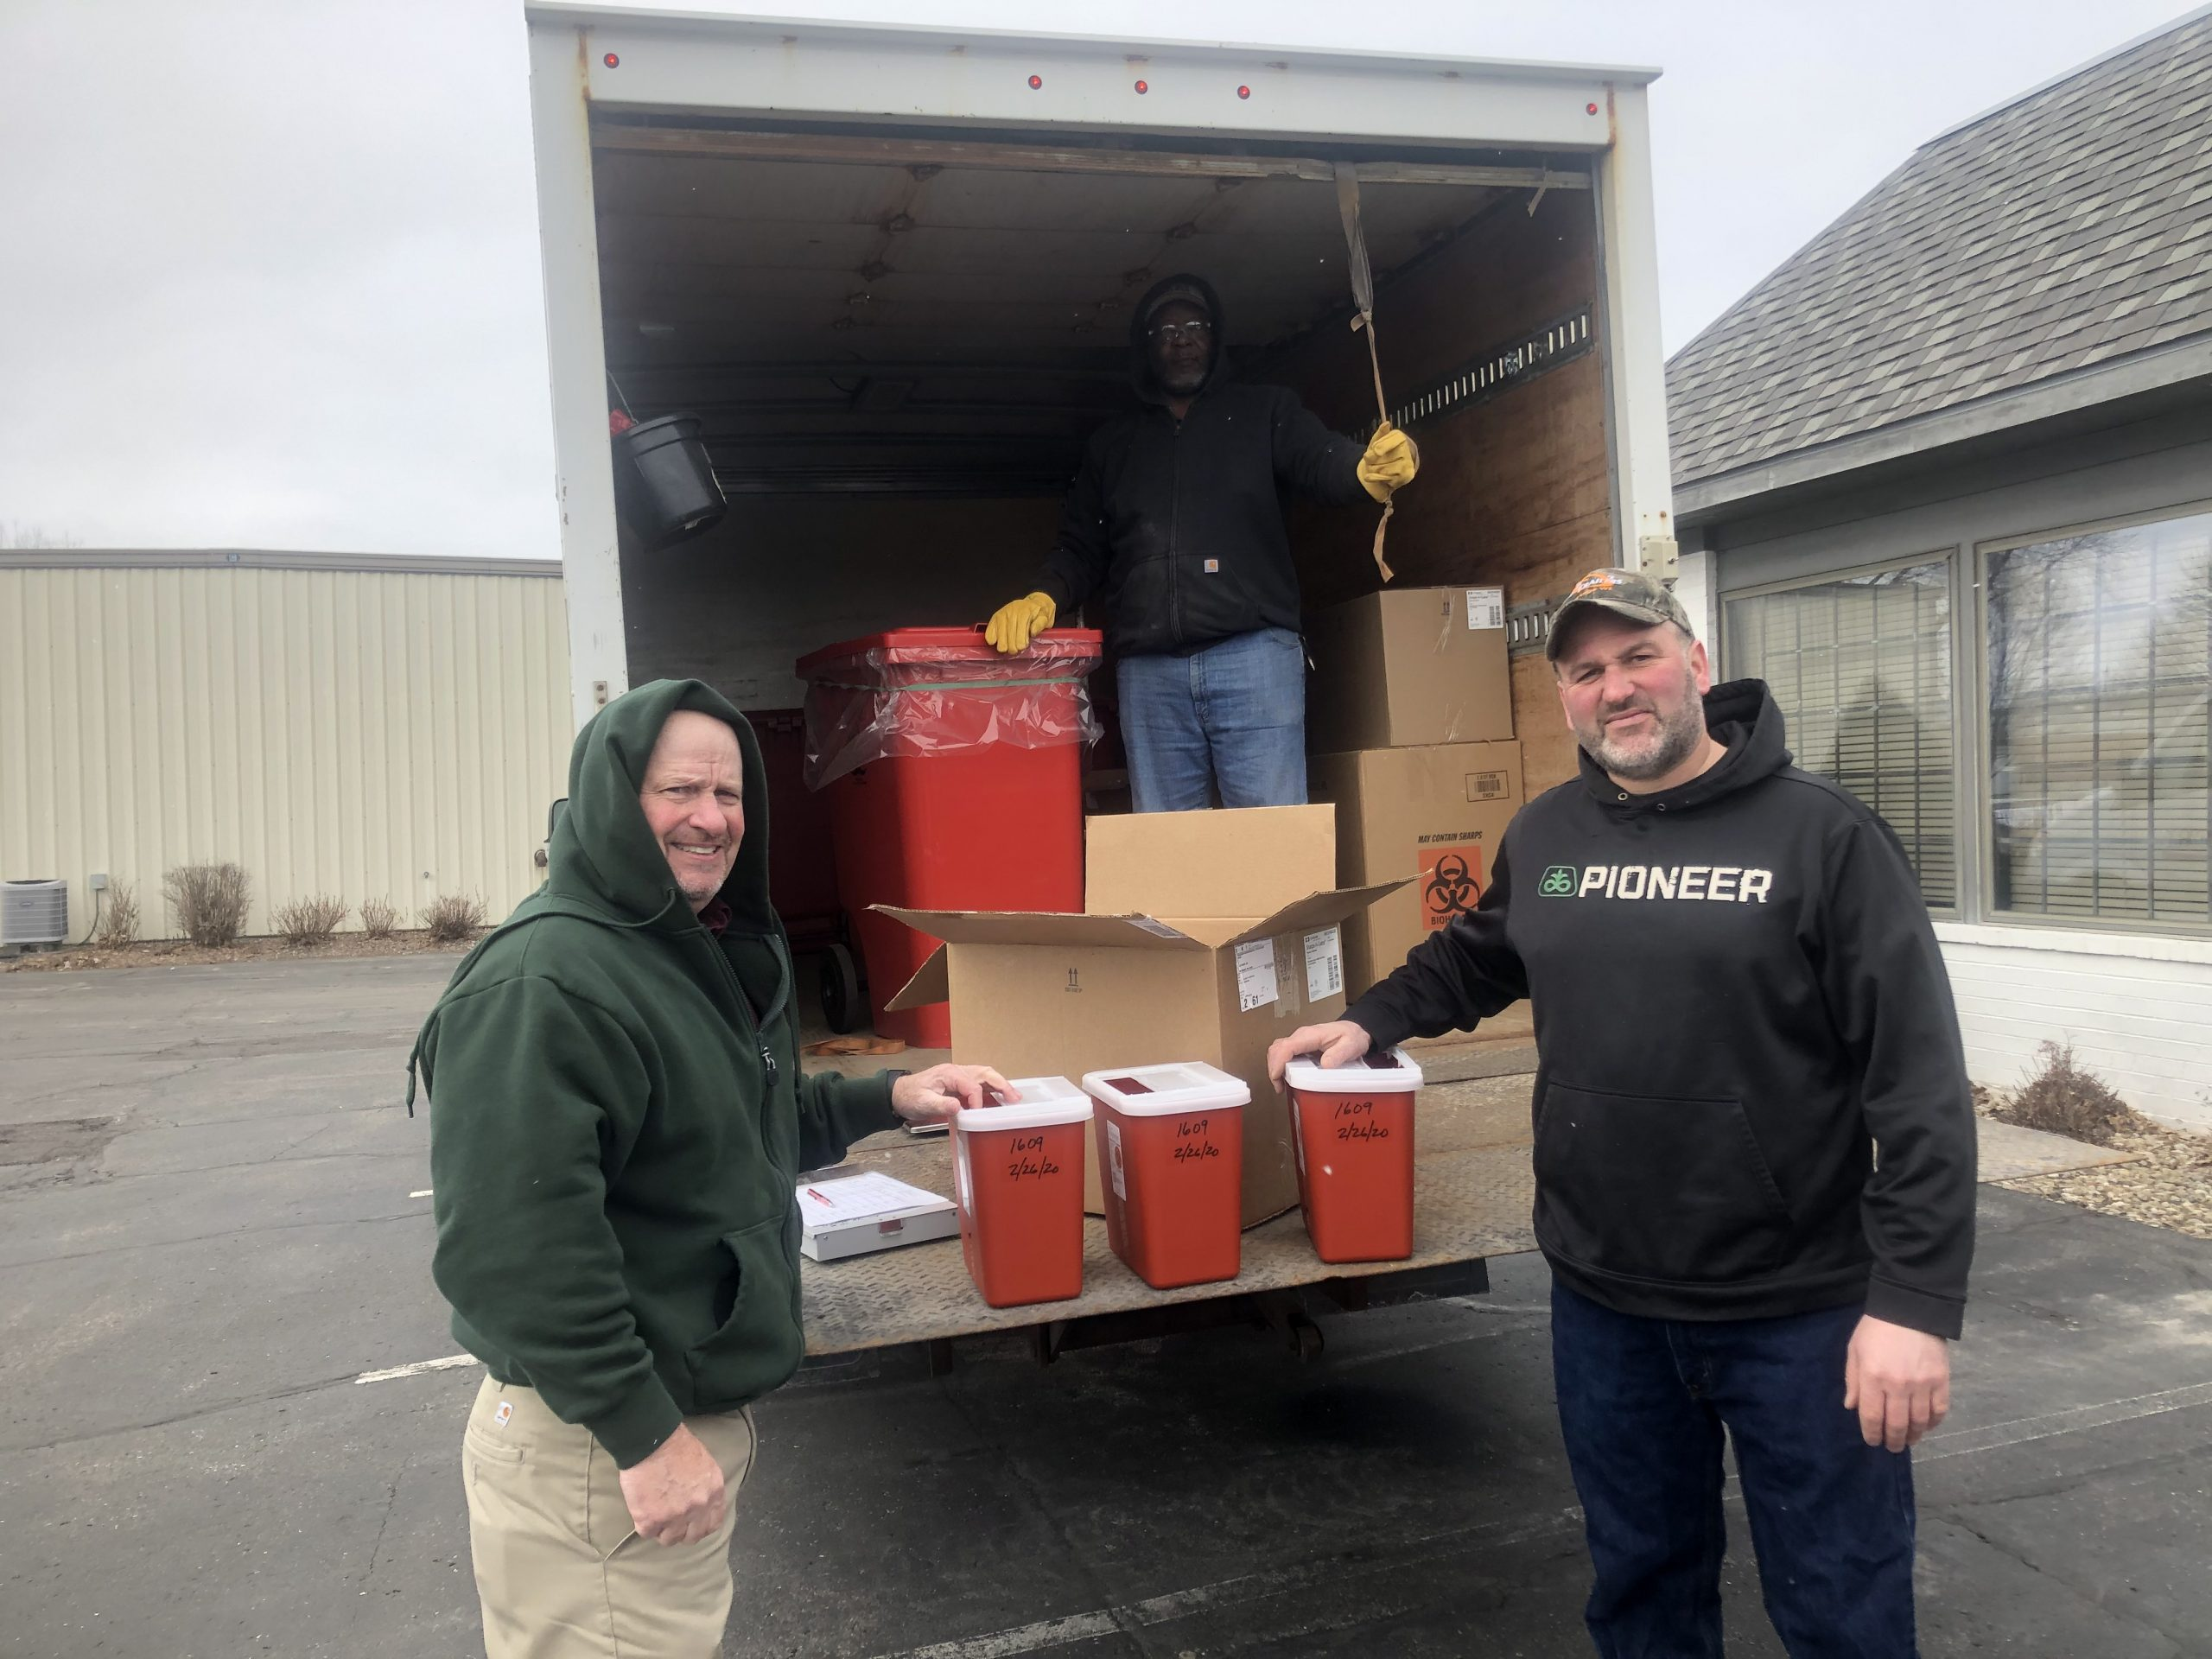 Top: MERI's Tyrone McGee is on hand as Grande's Randy Hardyman (left) hands producer Hardy Ripp a biohazard container as part of the sharps collection event held recently in Waunakee